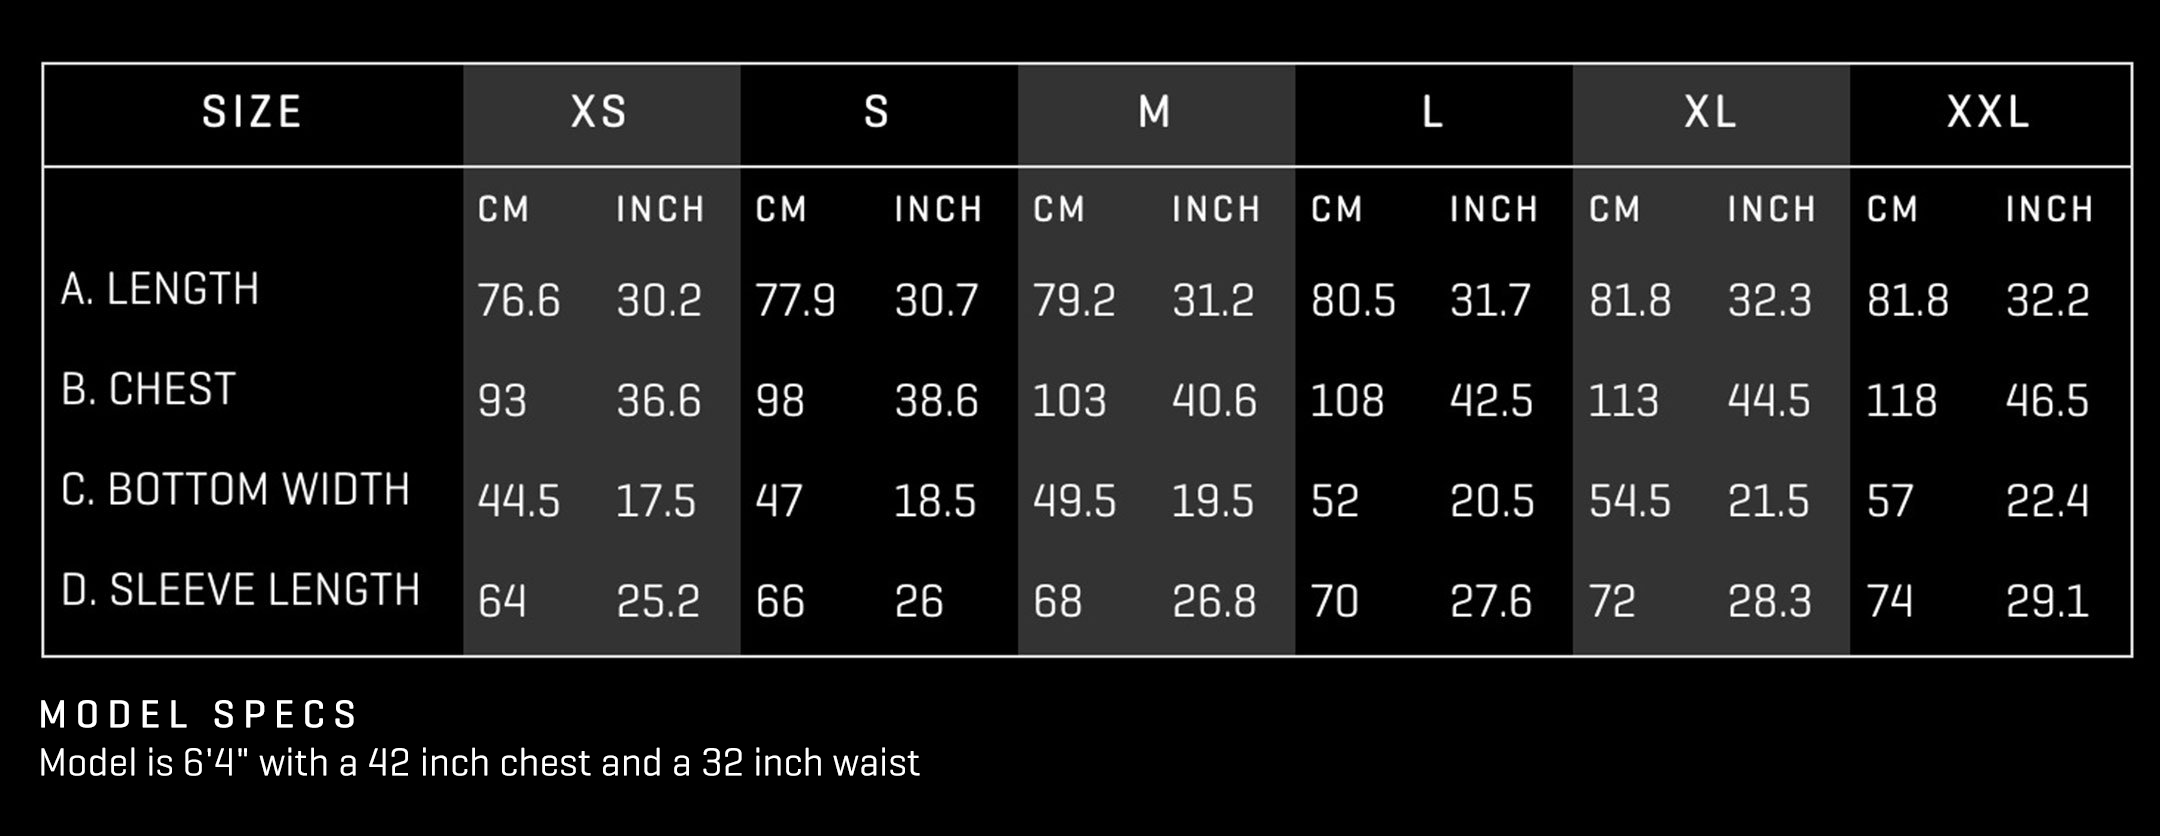 walter sky mh02 hoodie fitting chart